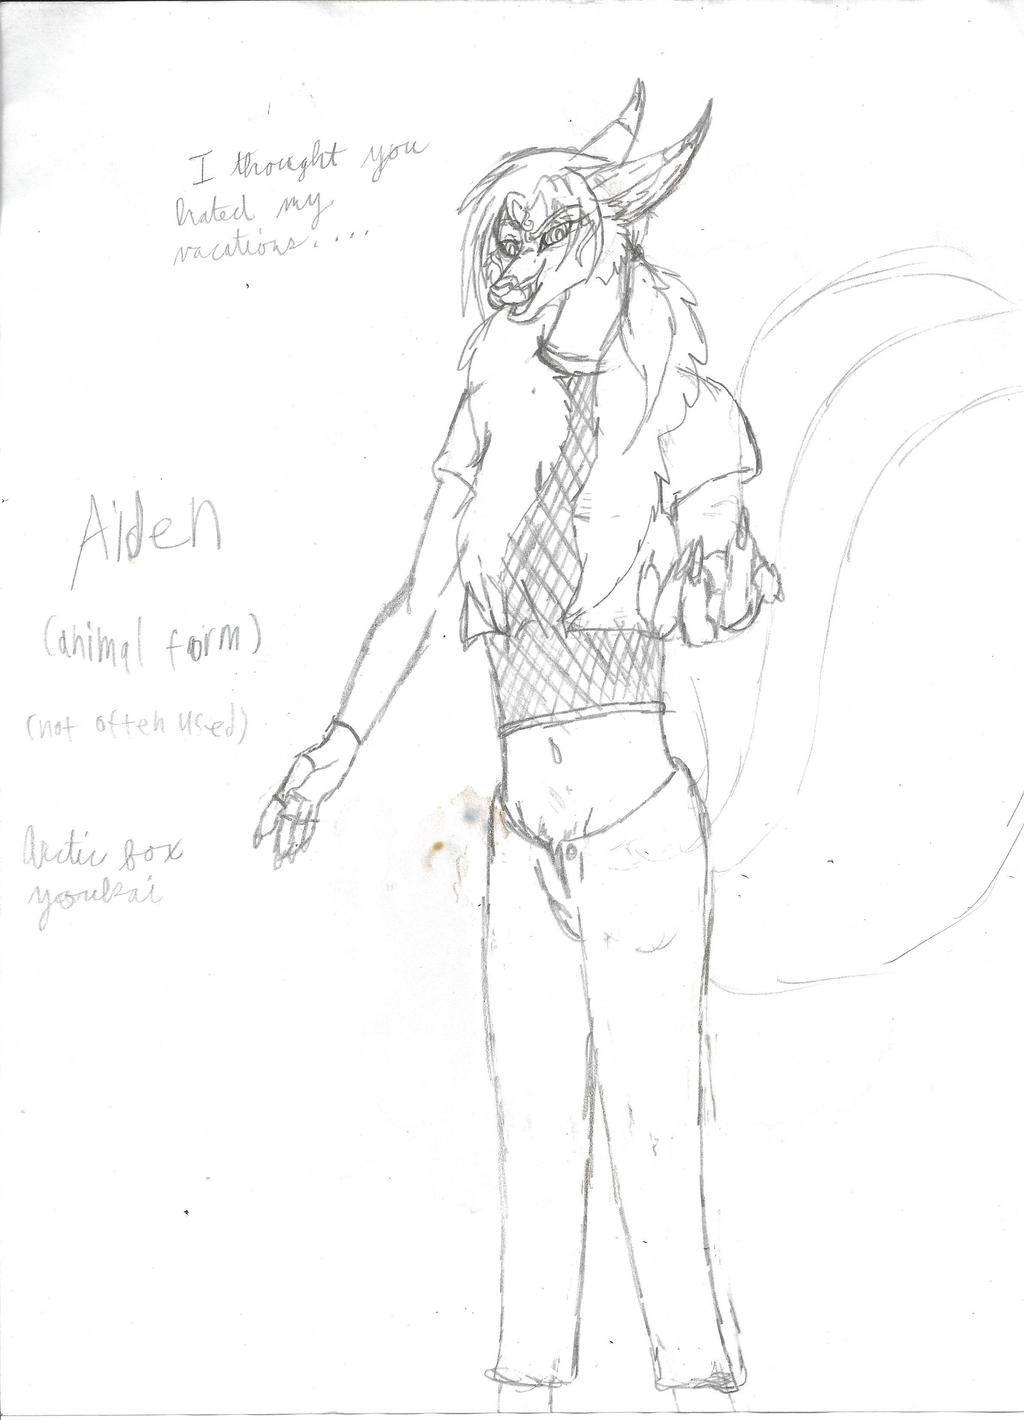 Aiden (Mixed Form)